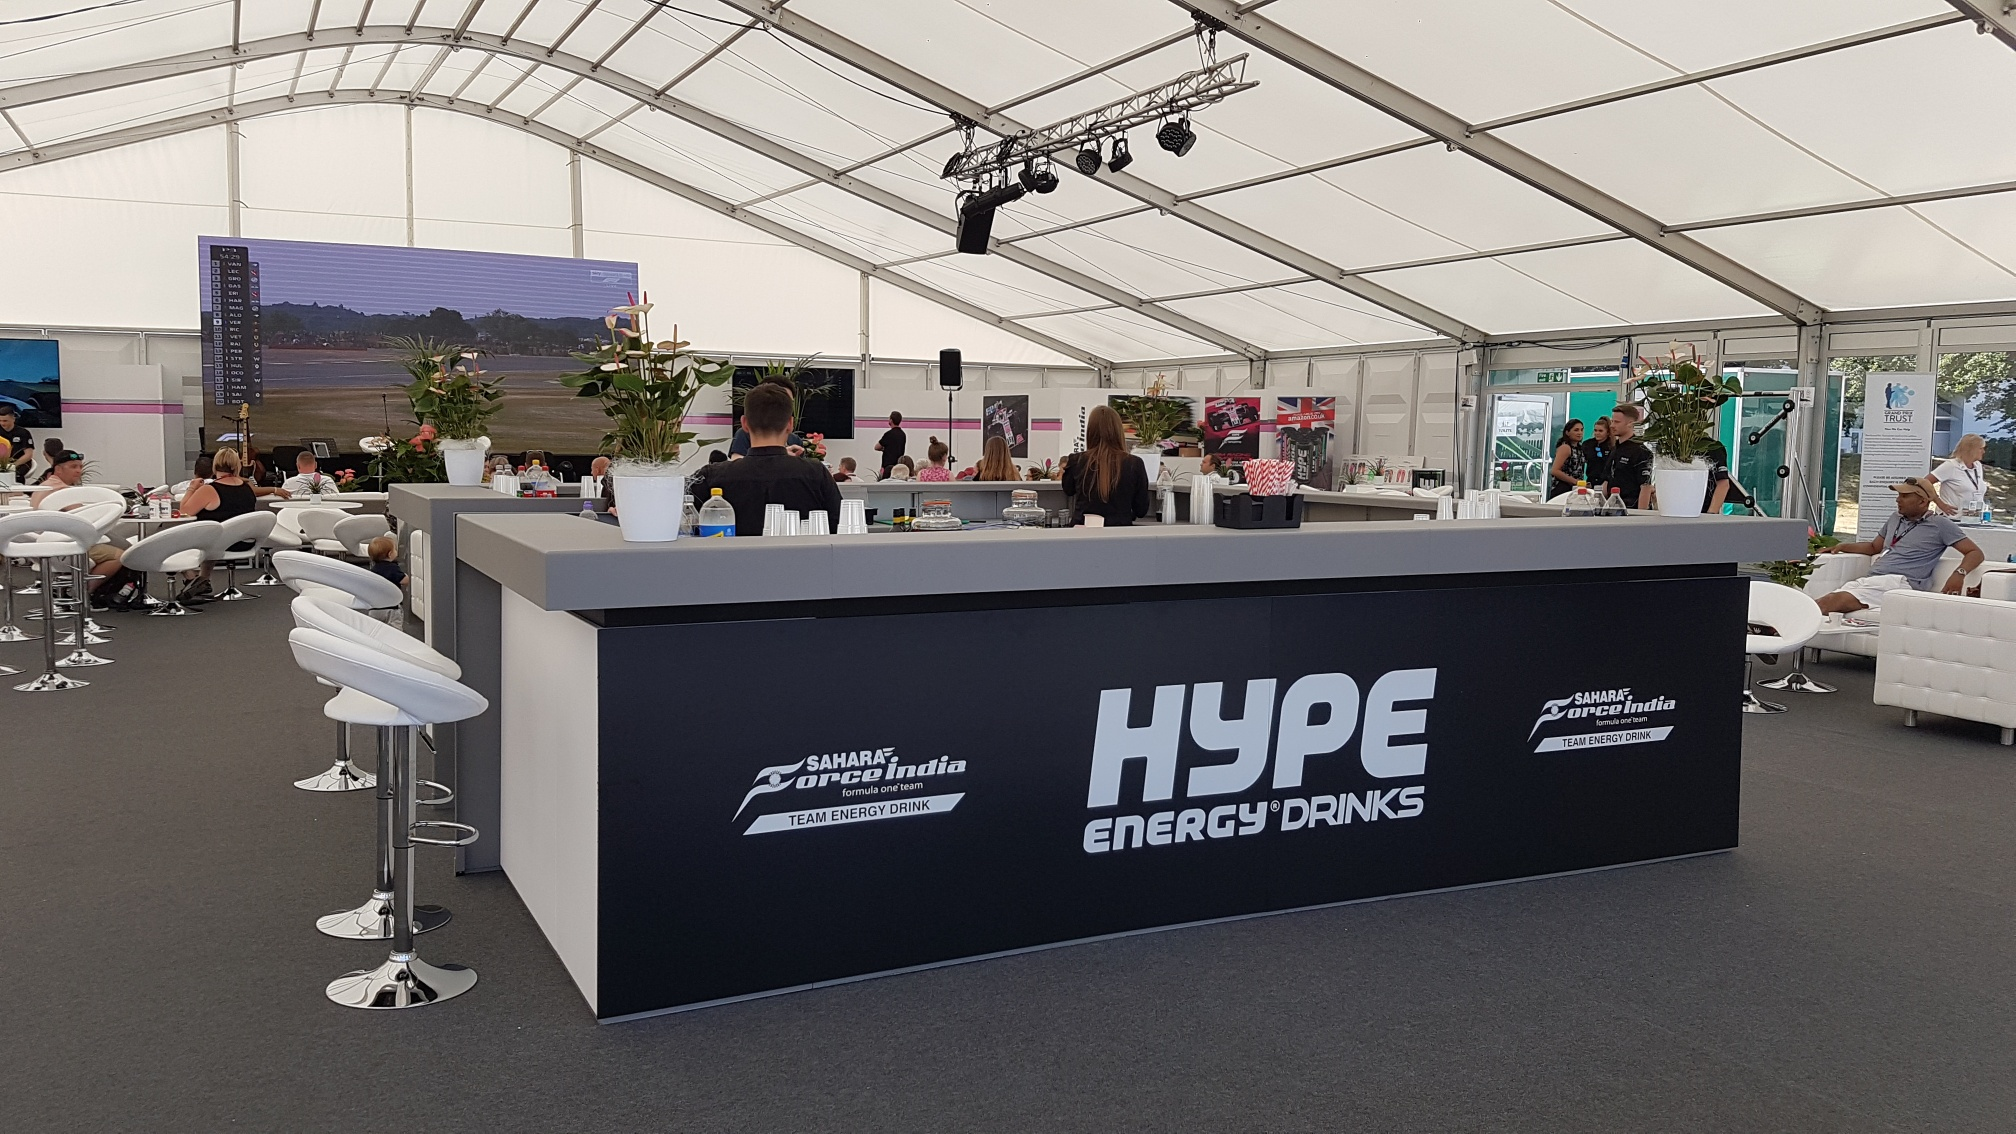 Hype Energy Drinks branded bar - July 20